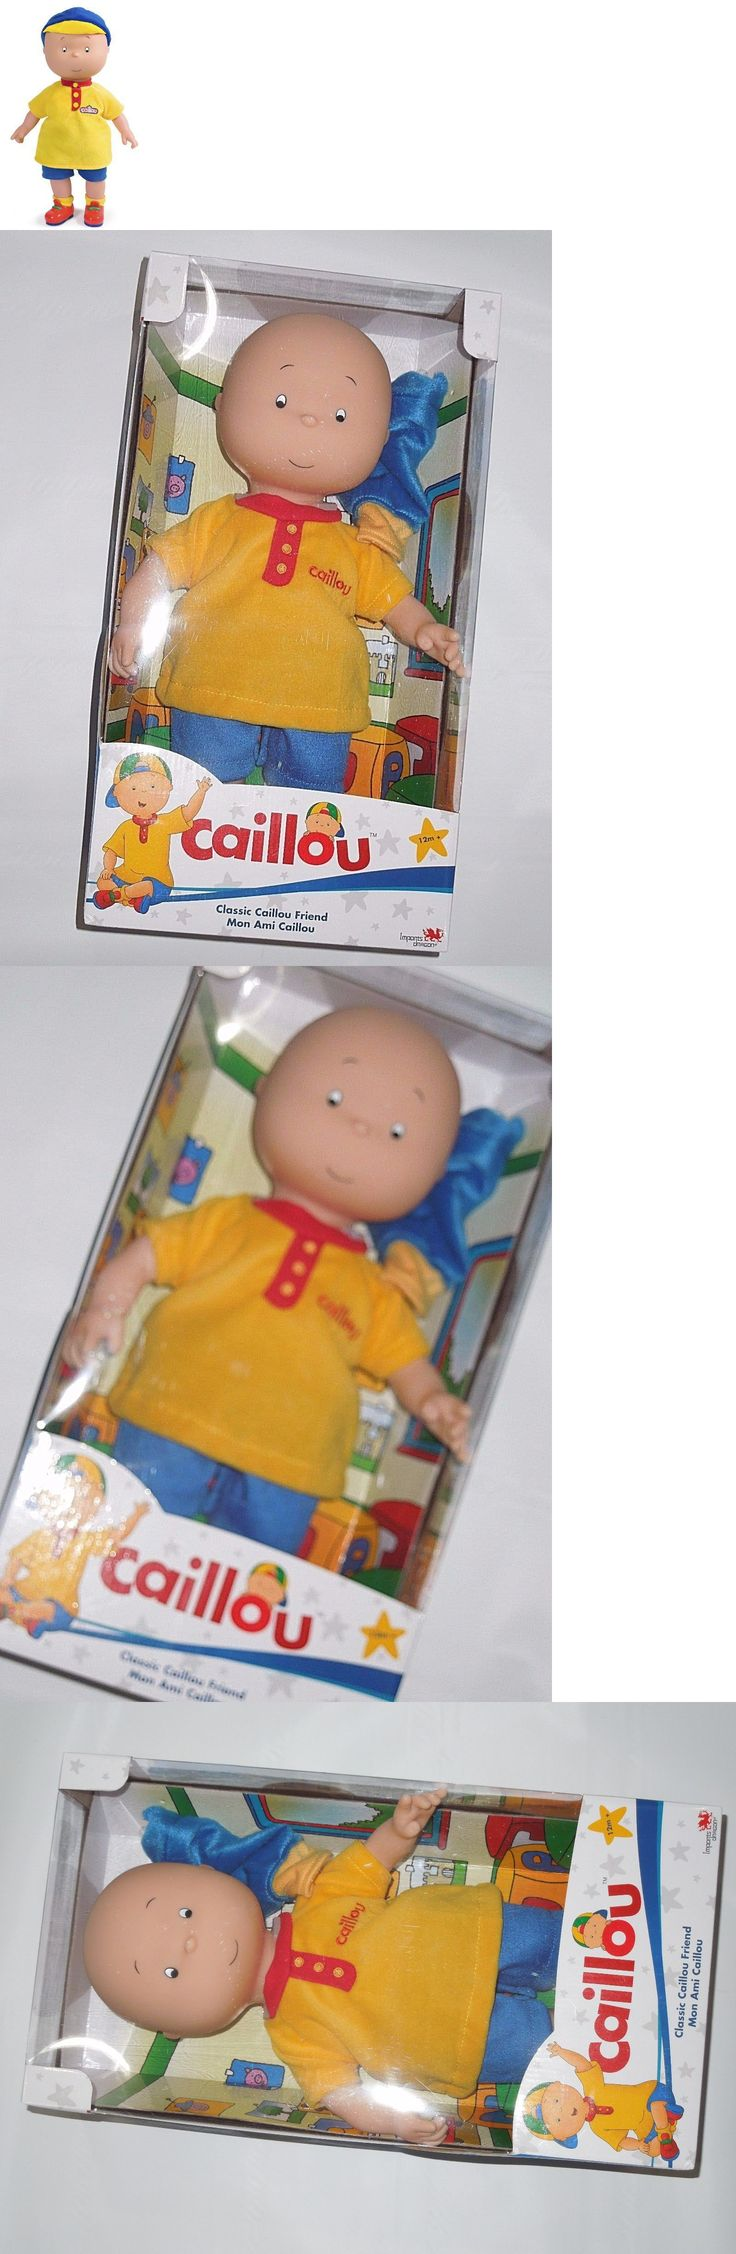 Caillou 20903: Caillou Classic Friend 14 Inch Doll ***** Rare Toy -> BUY IT NOW ONLY: $121.76 on eBay!